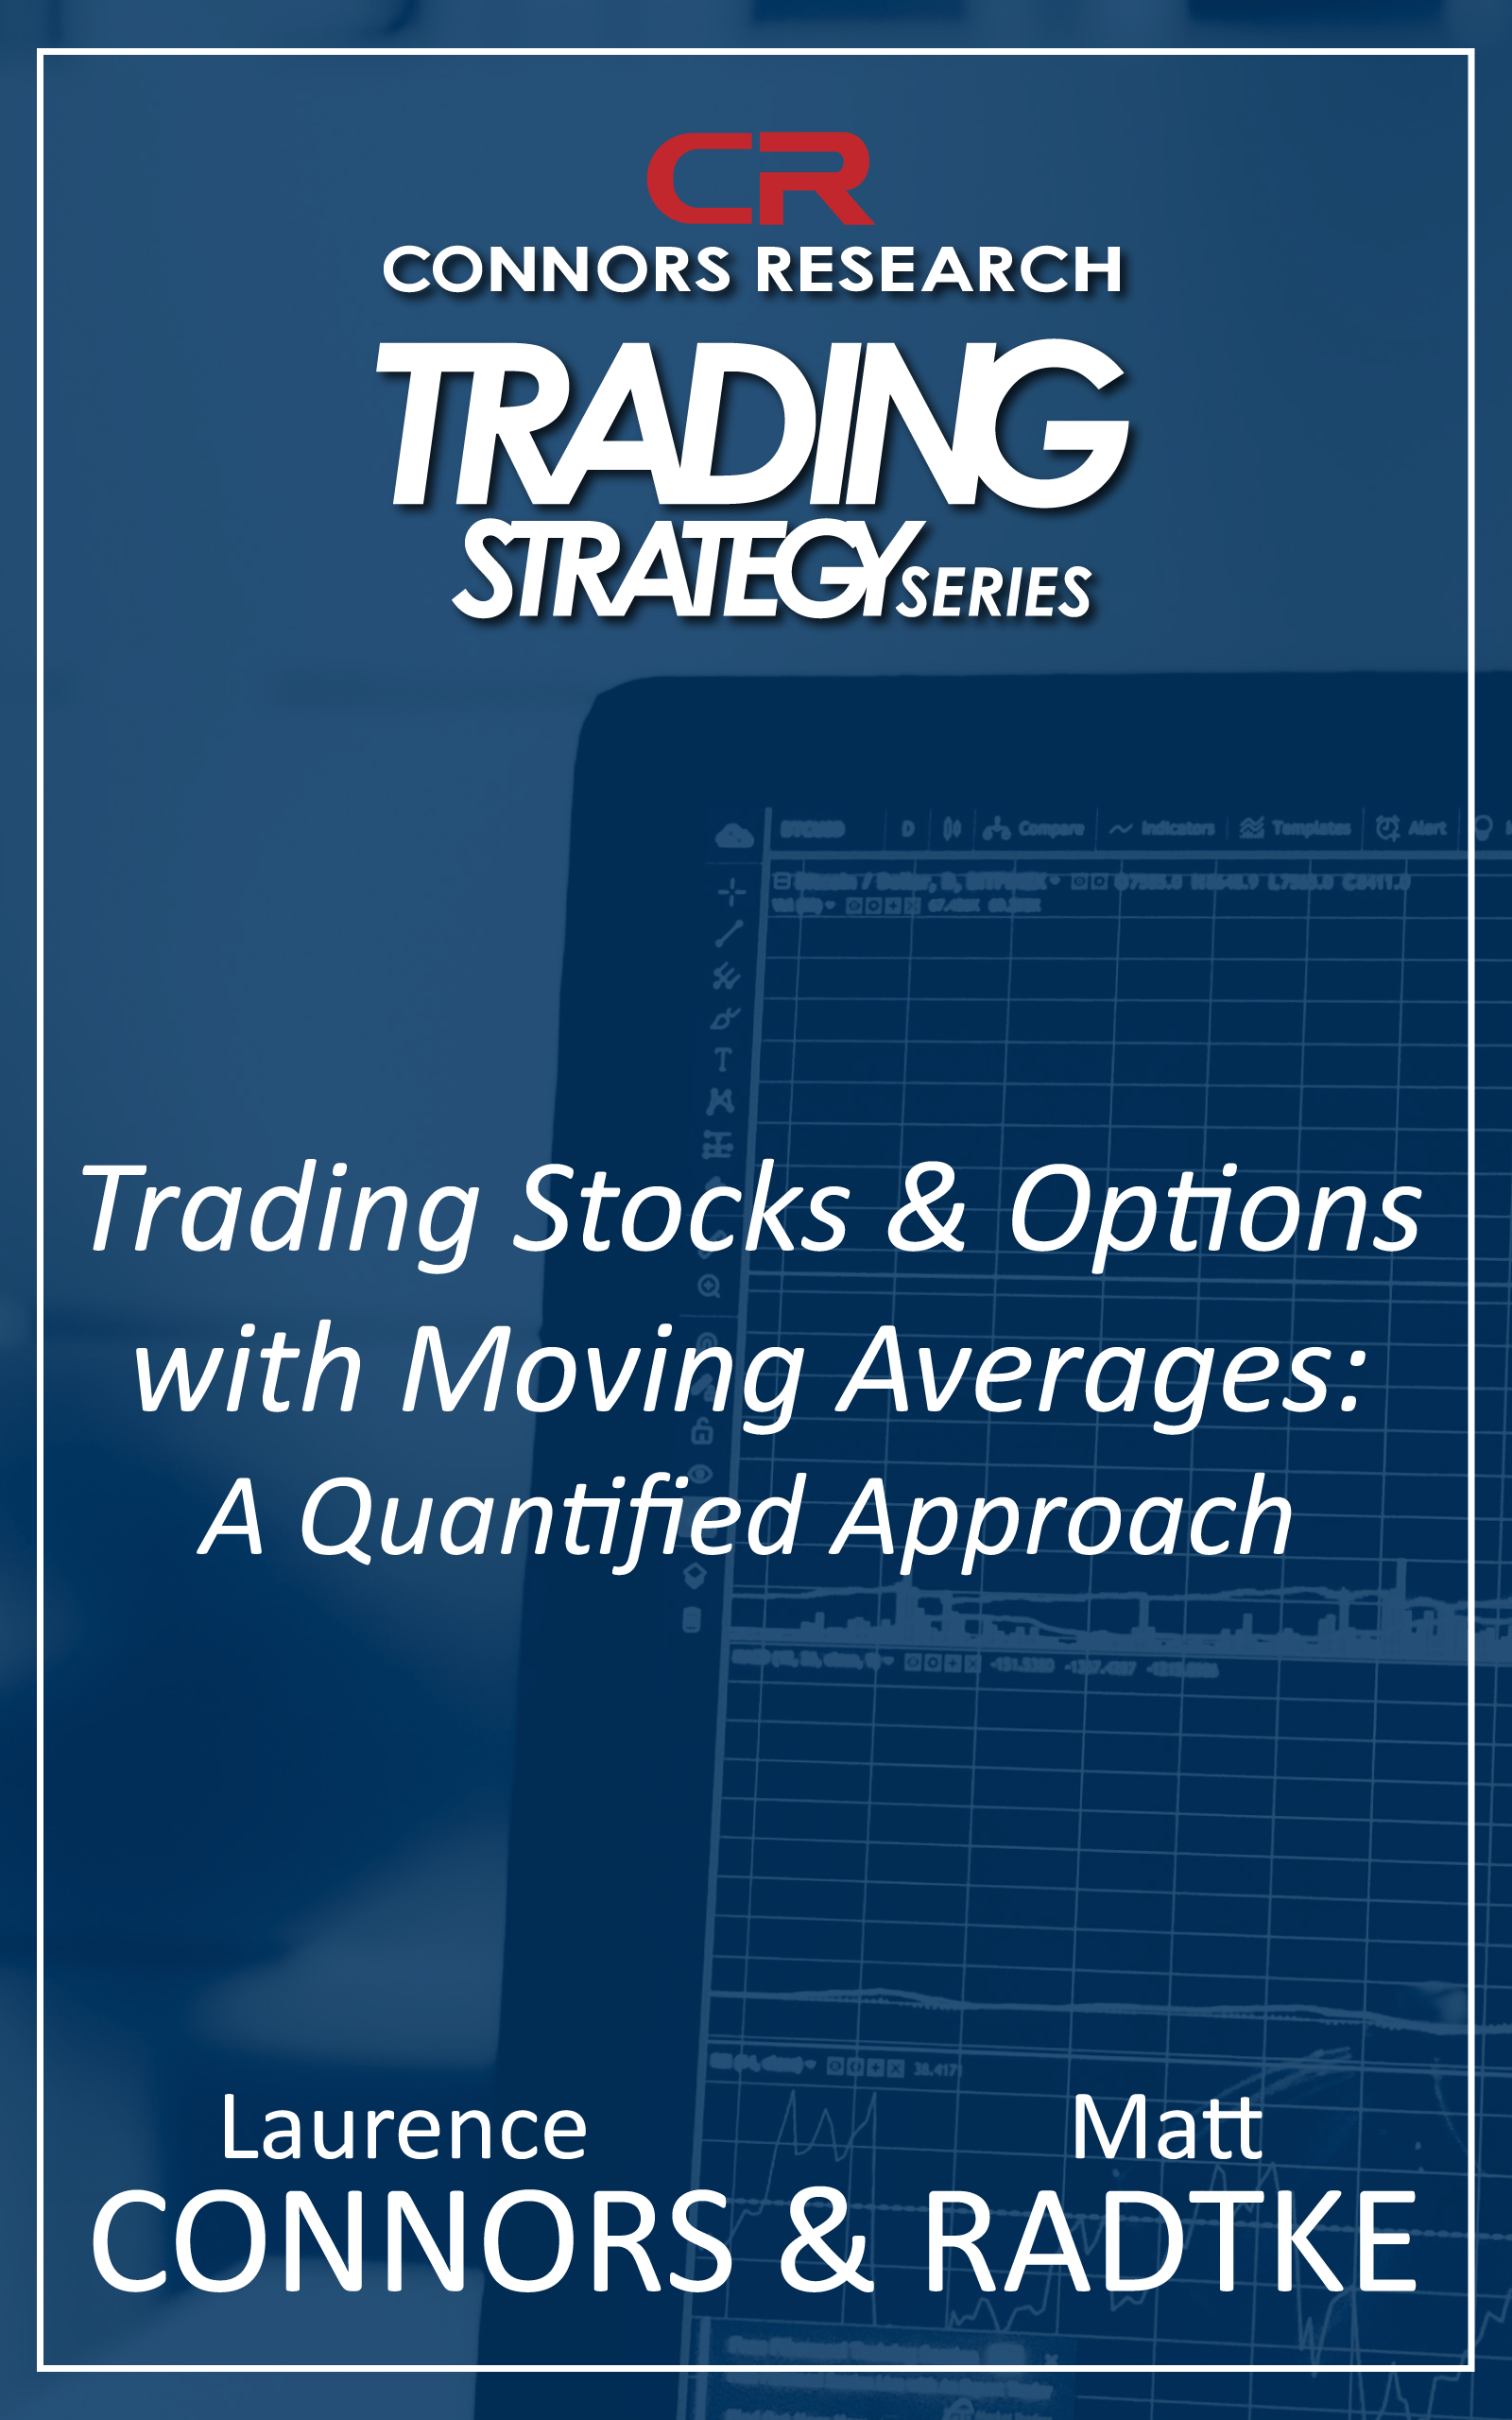 Connors Research Trading Strategy Series: Trading Stocks and Options with Moving Averages - A Quantified Approach BOO-CROM-D